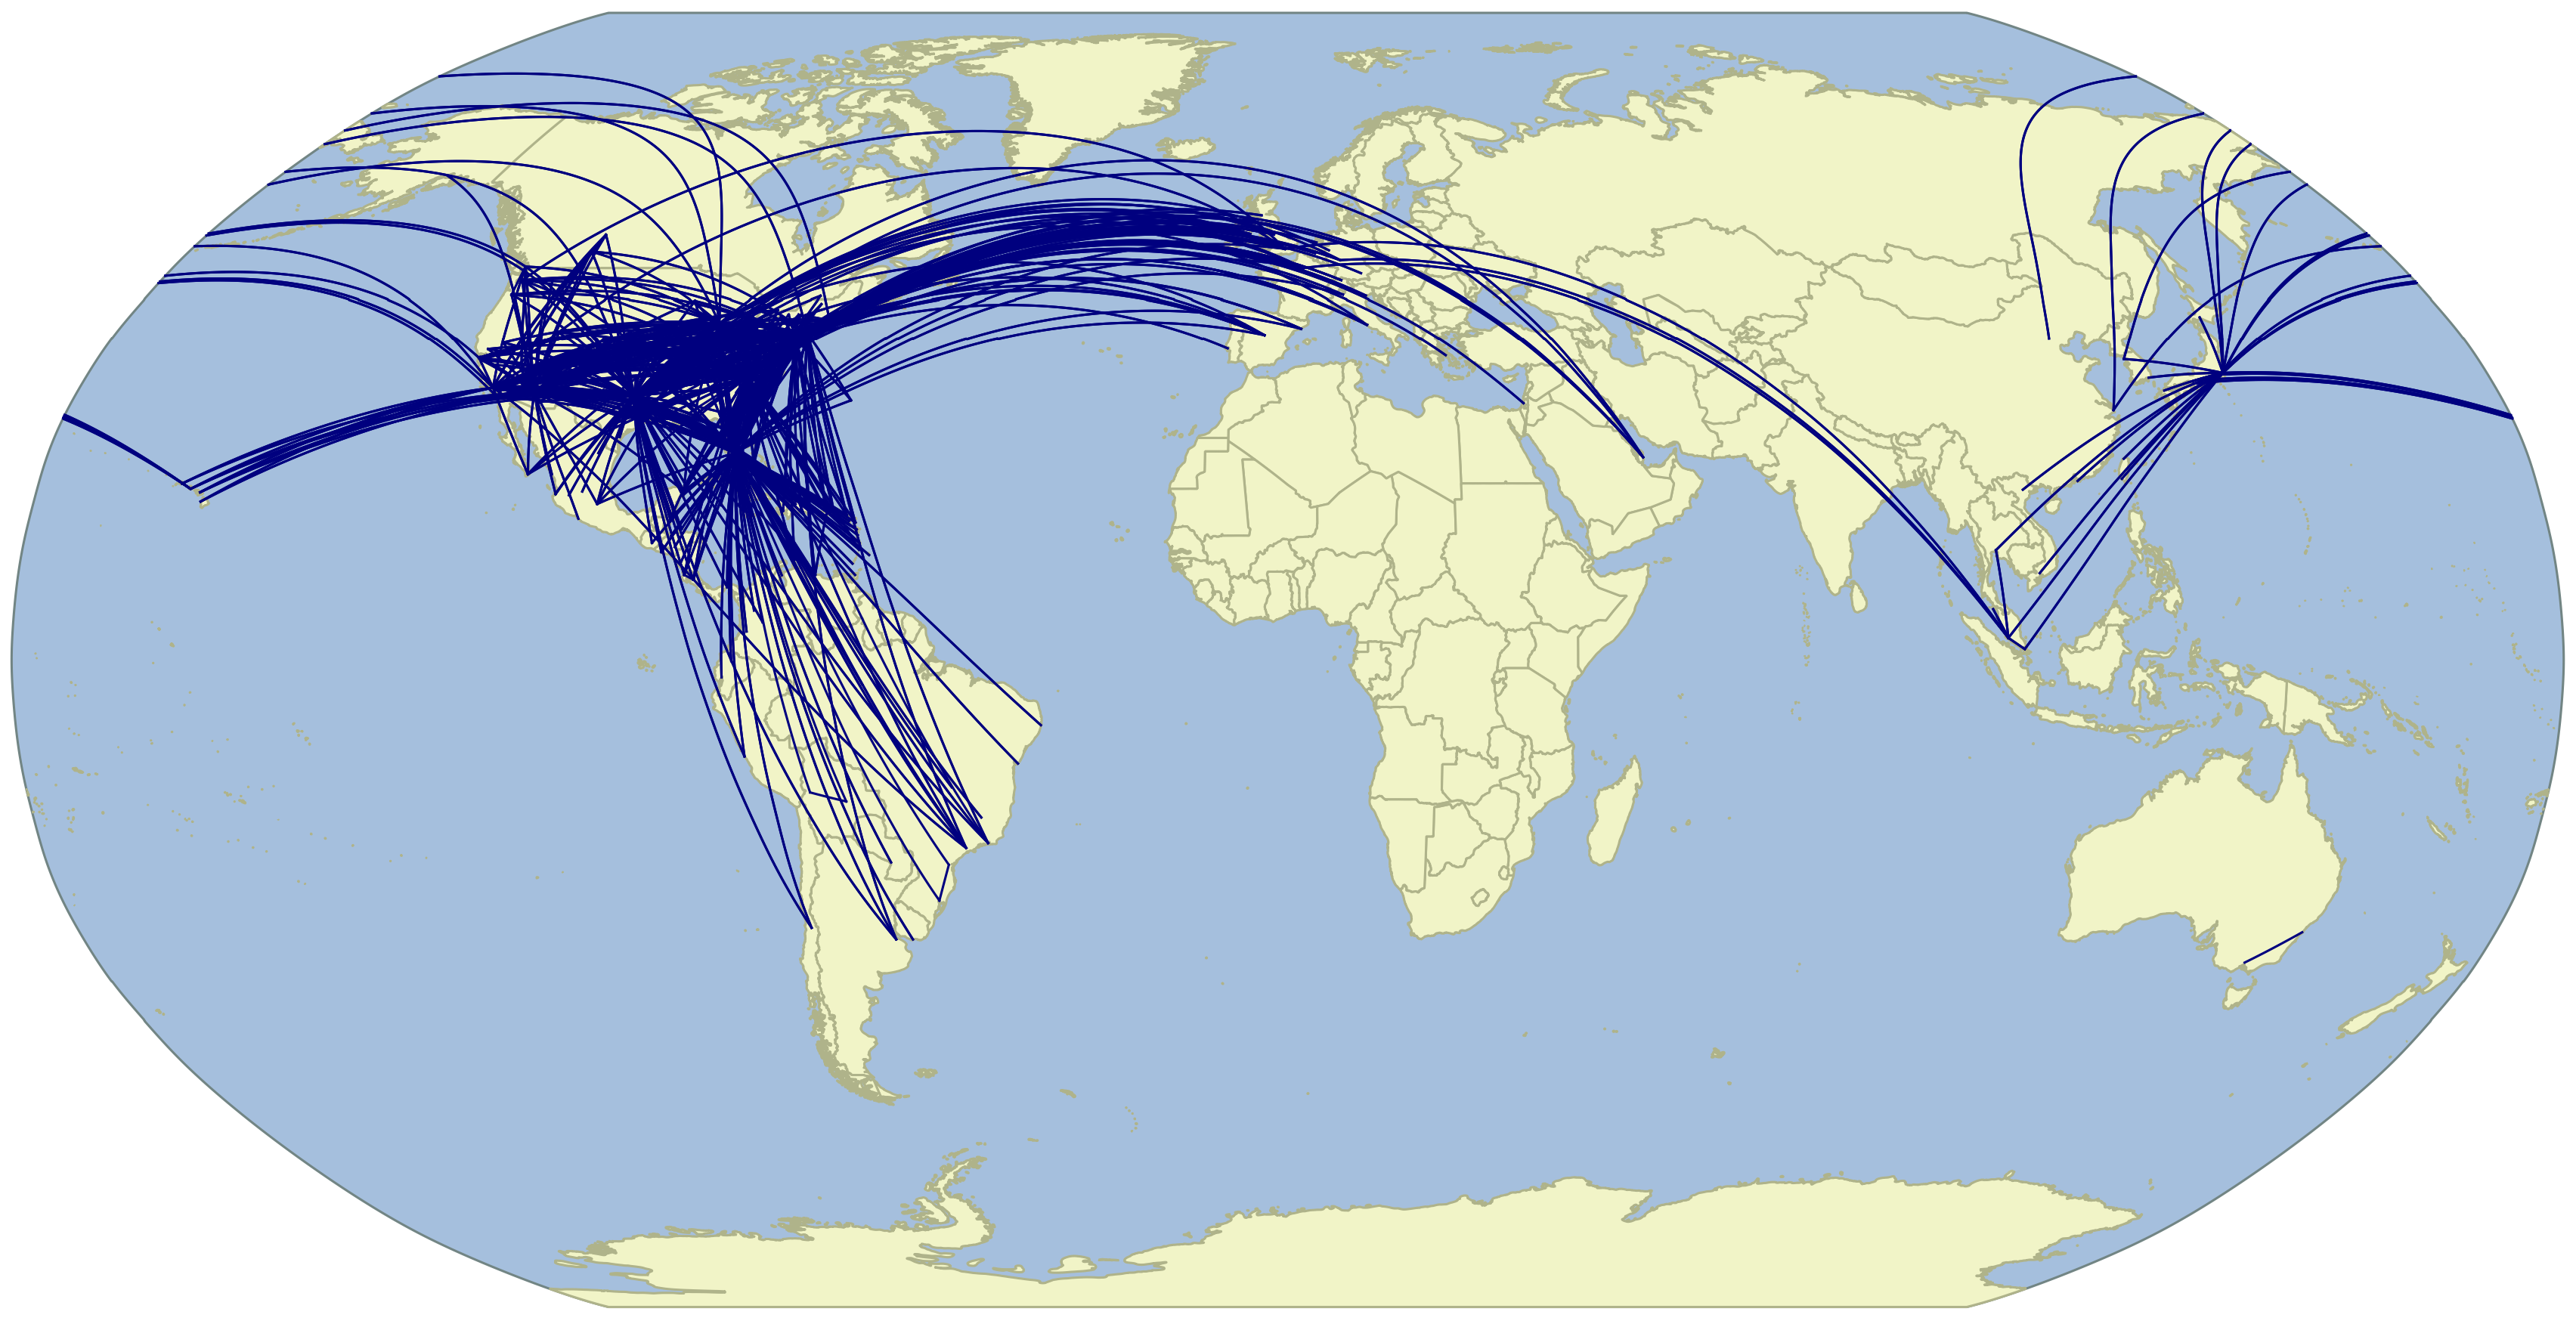 AA 777-200ER replacement, A350 , 787-9 order potential ...